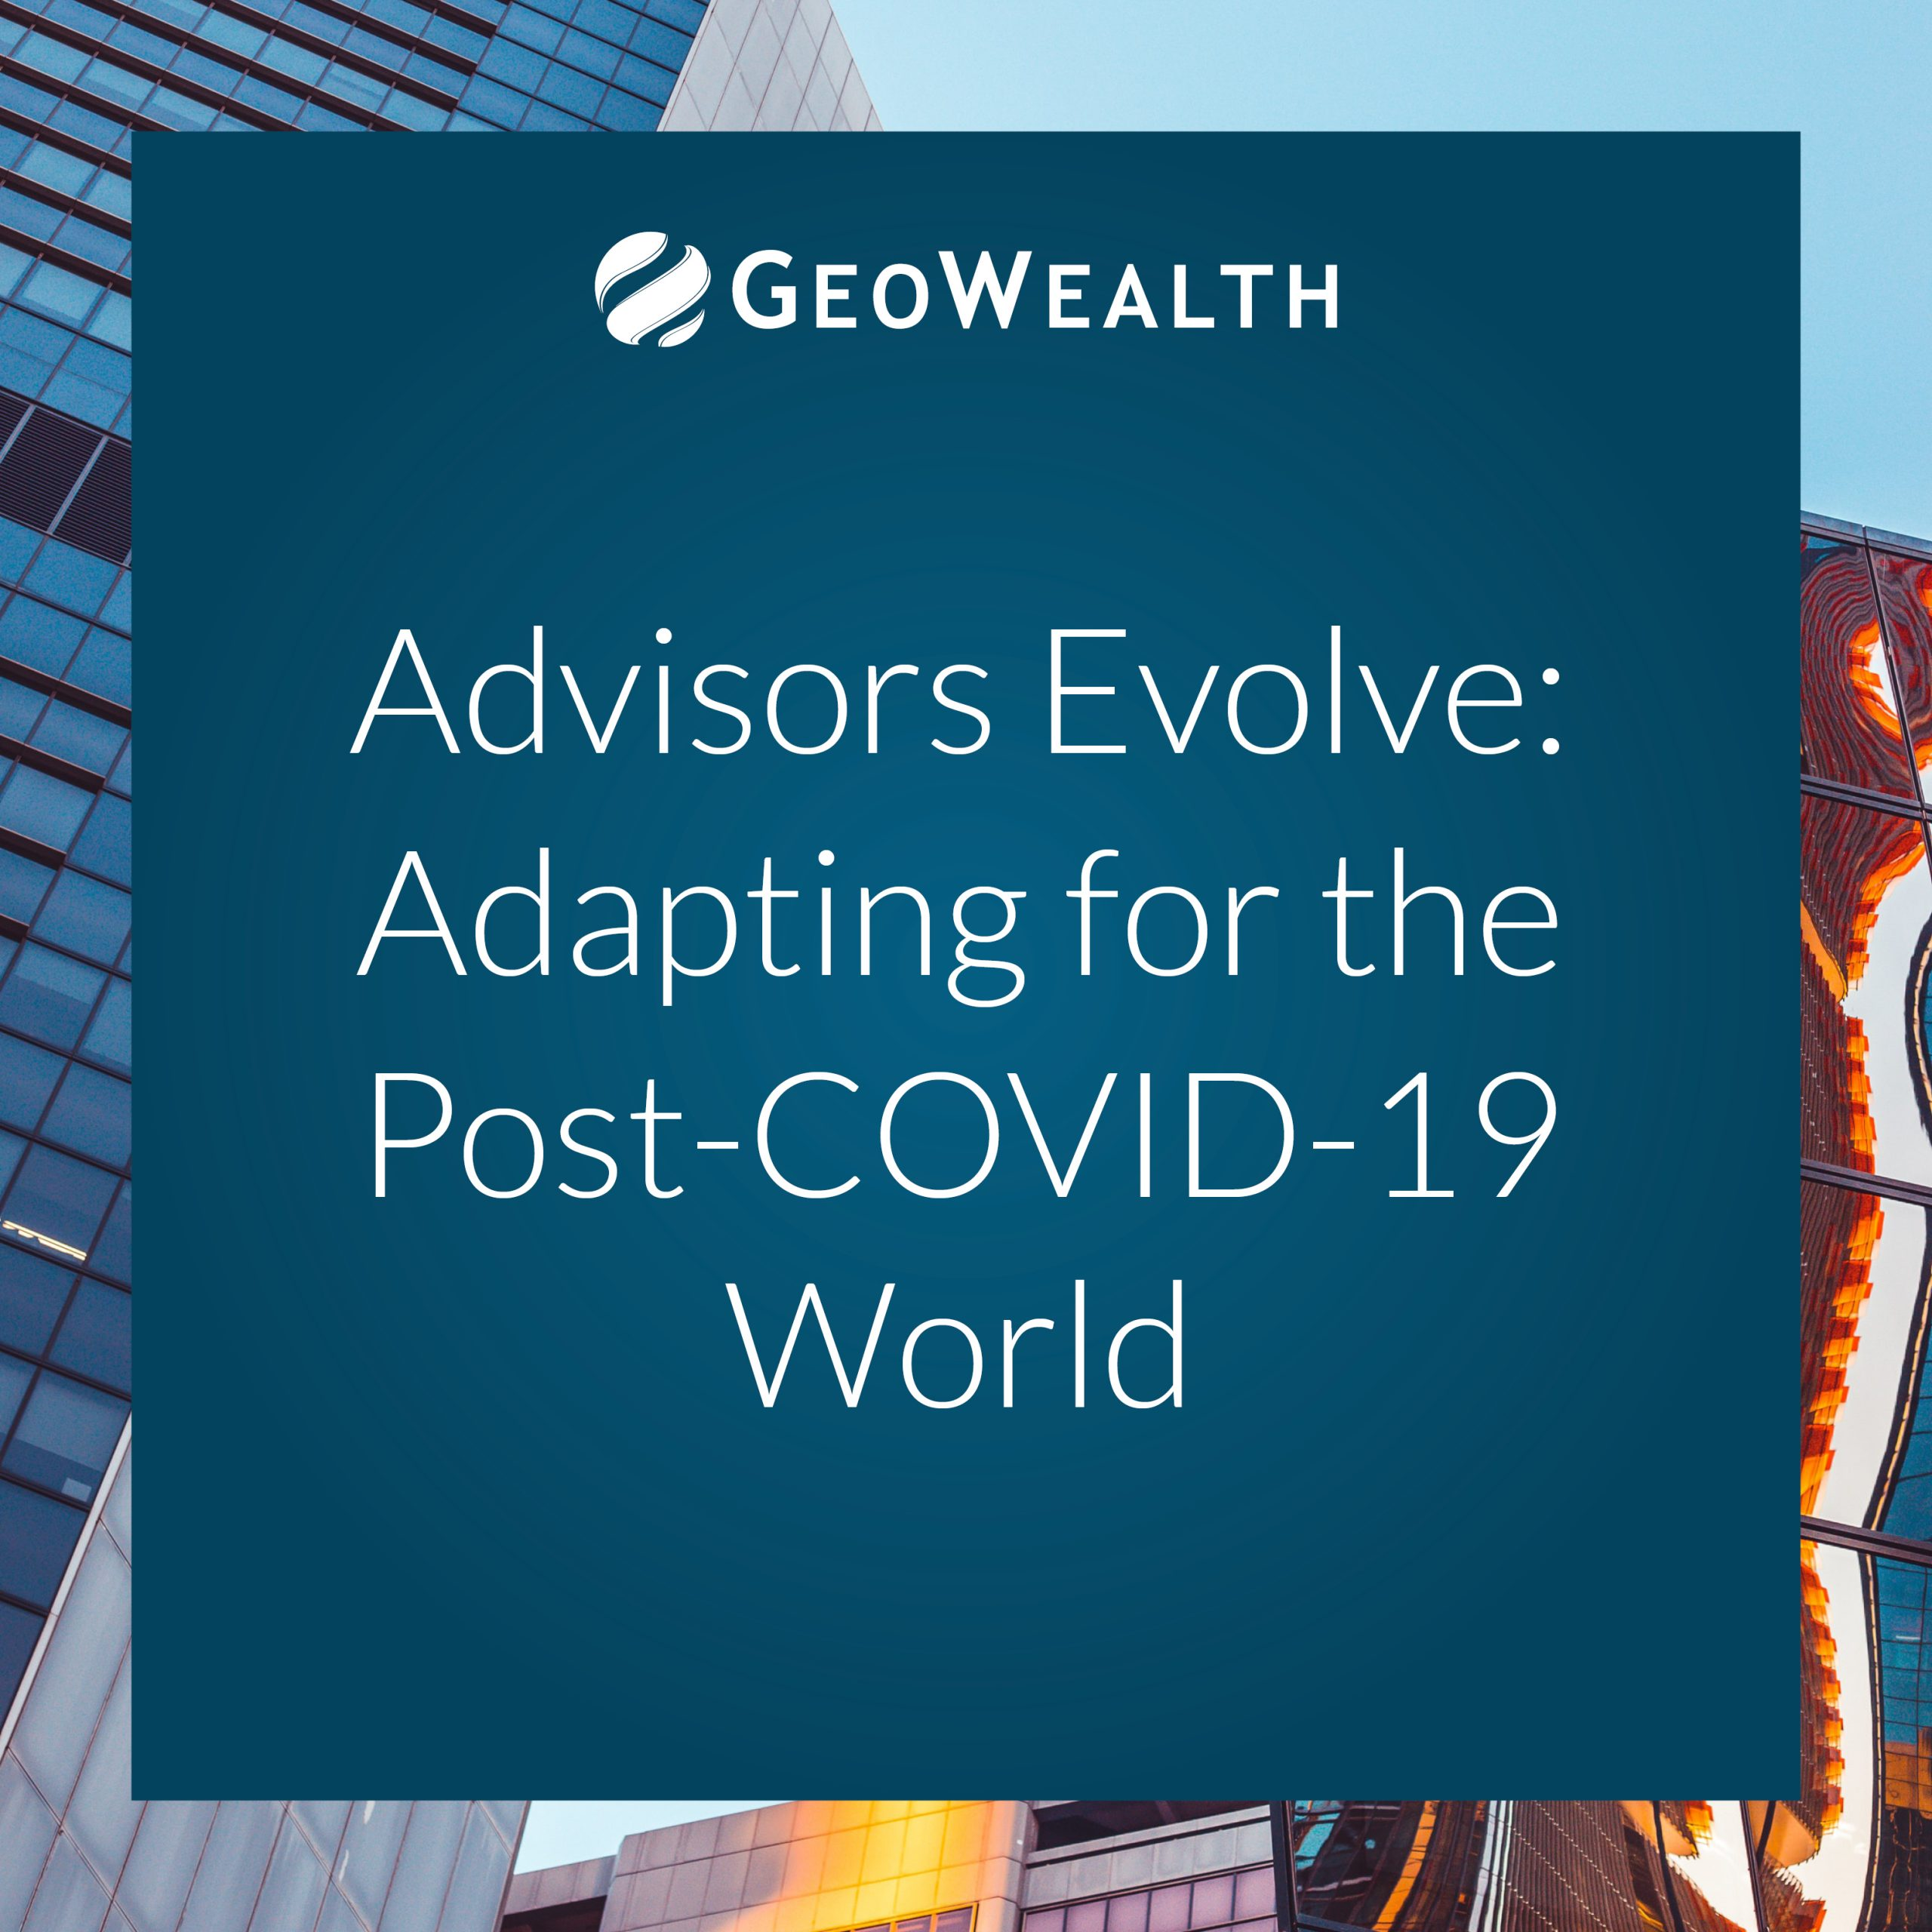 Advisors Evolve COVID-19